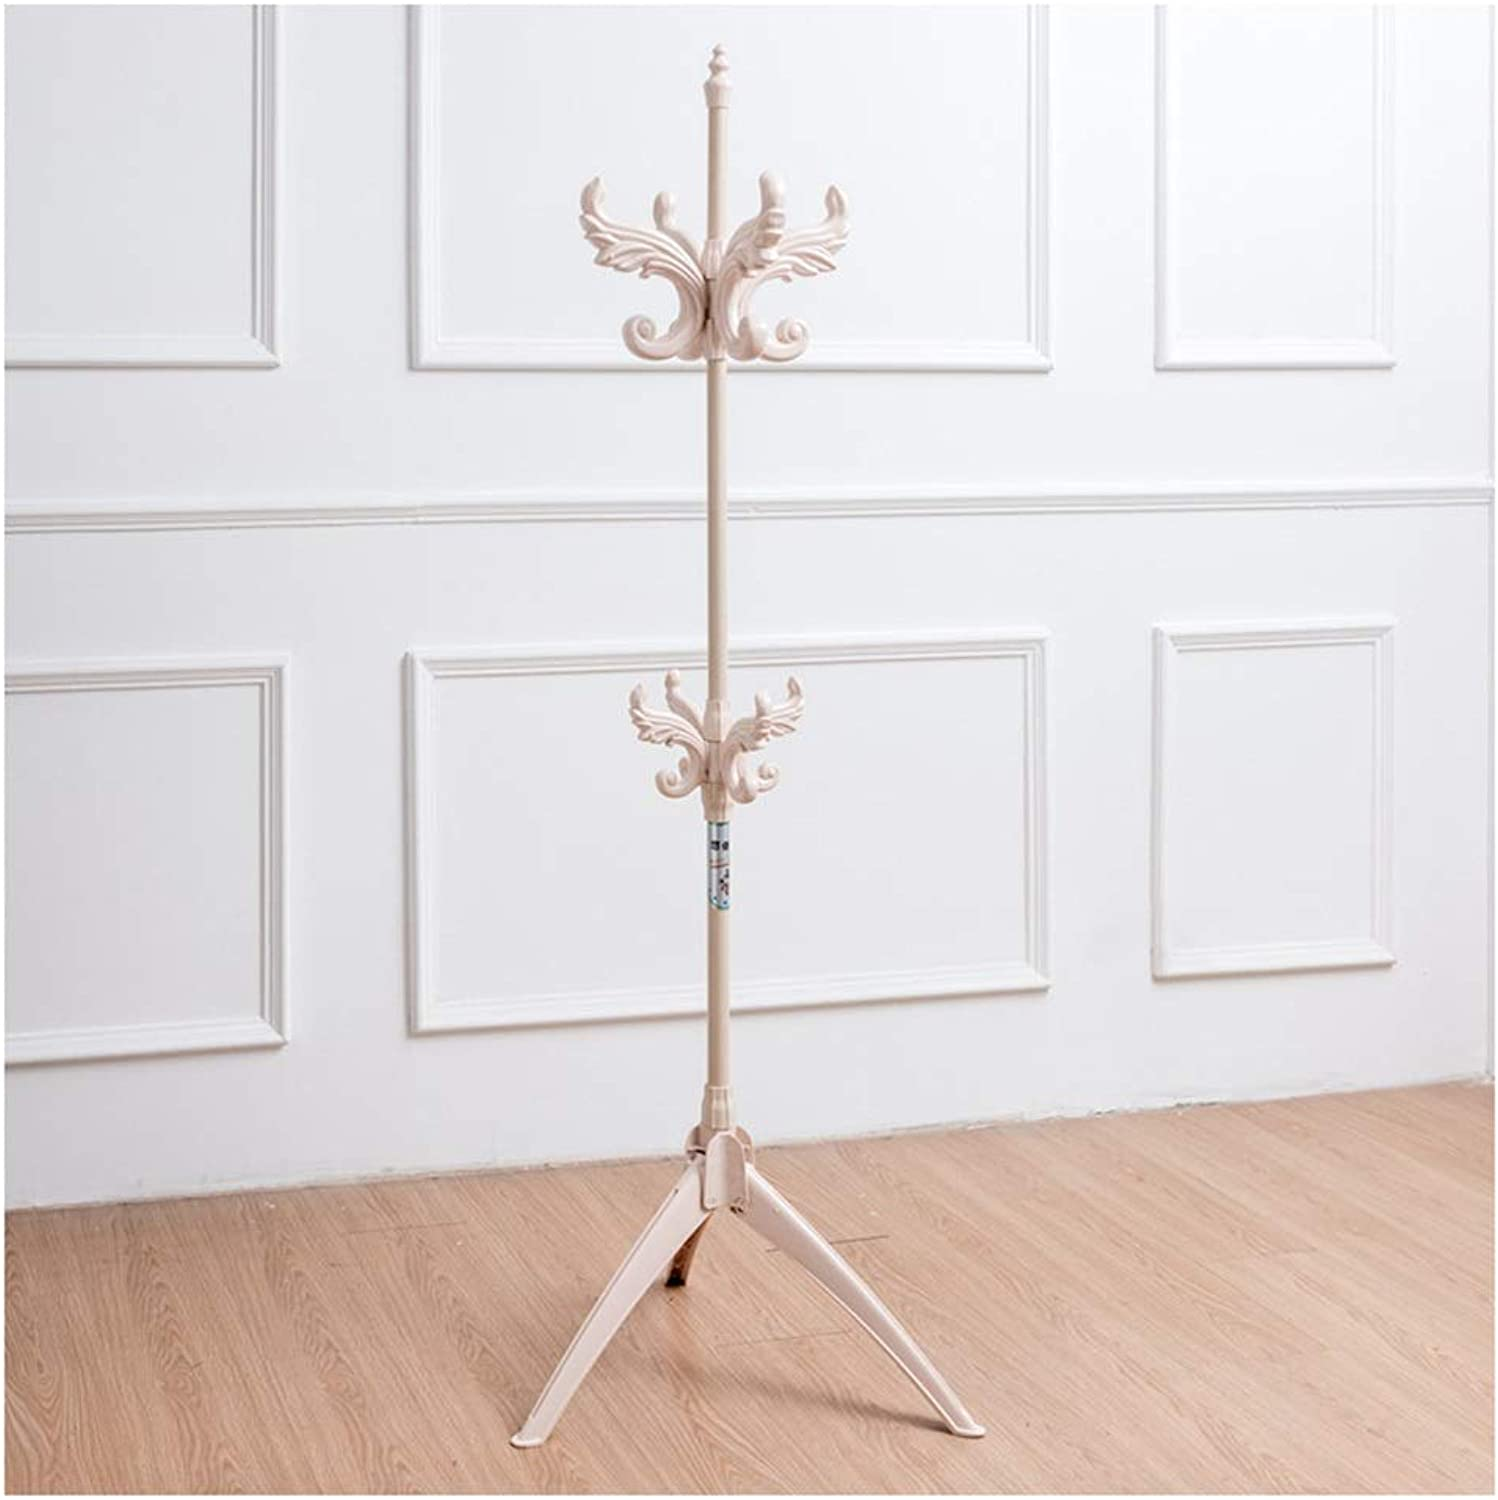 XIAOLONG Standing Coat Rack High 185CM Plastic Adjustable Hall Trees Entryway Coat Stand Clothes Rack Bedroom Living Room Clothes Hat Scarf Umbrella Stand Multifunctional Storage Rack -45